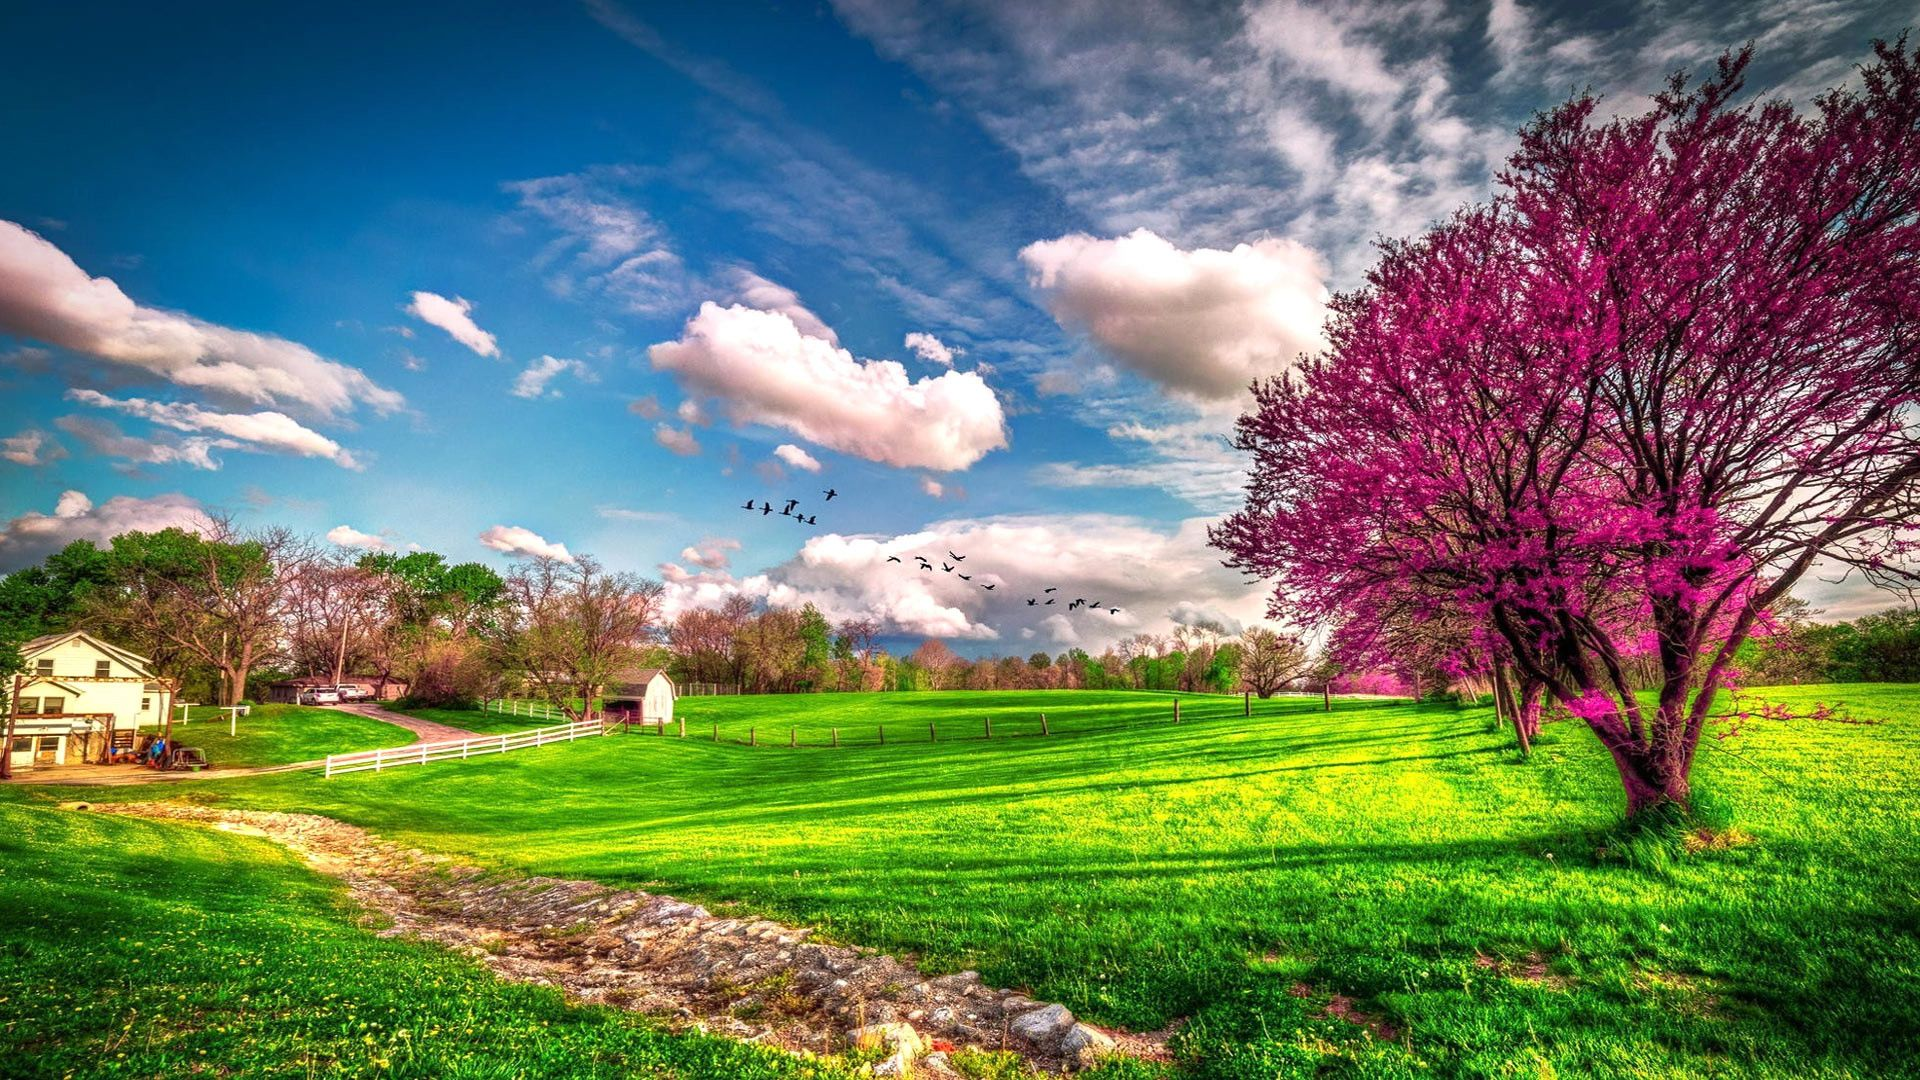 Landscape beautiful spring nature   Spring Wallpapers Seasons 1920x1080